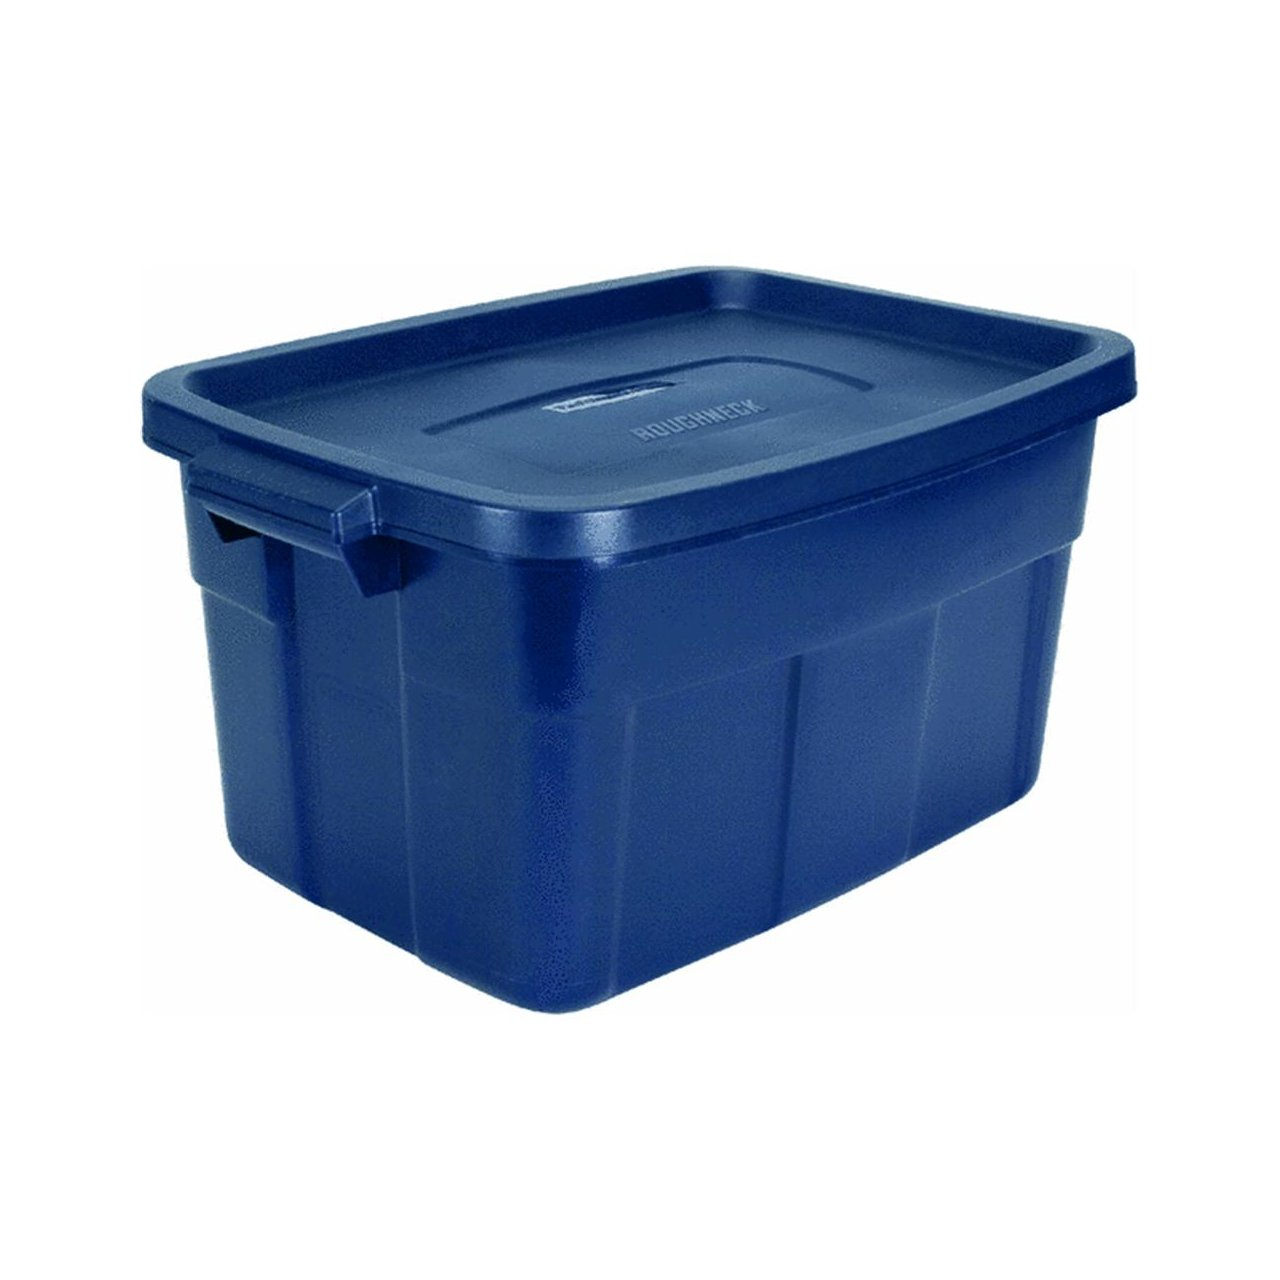 Rubbermaid Roughneck Storage Container, 14-gallon